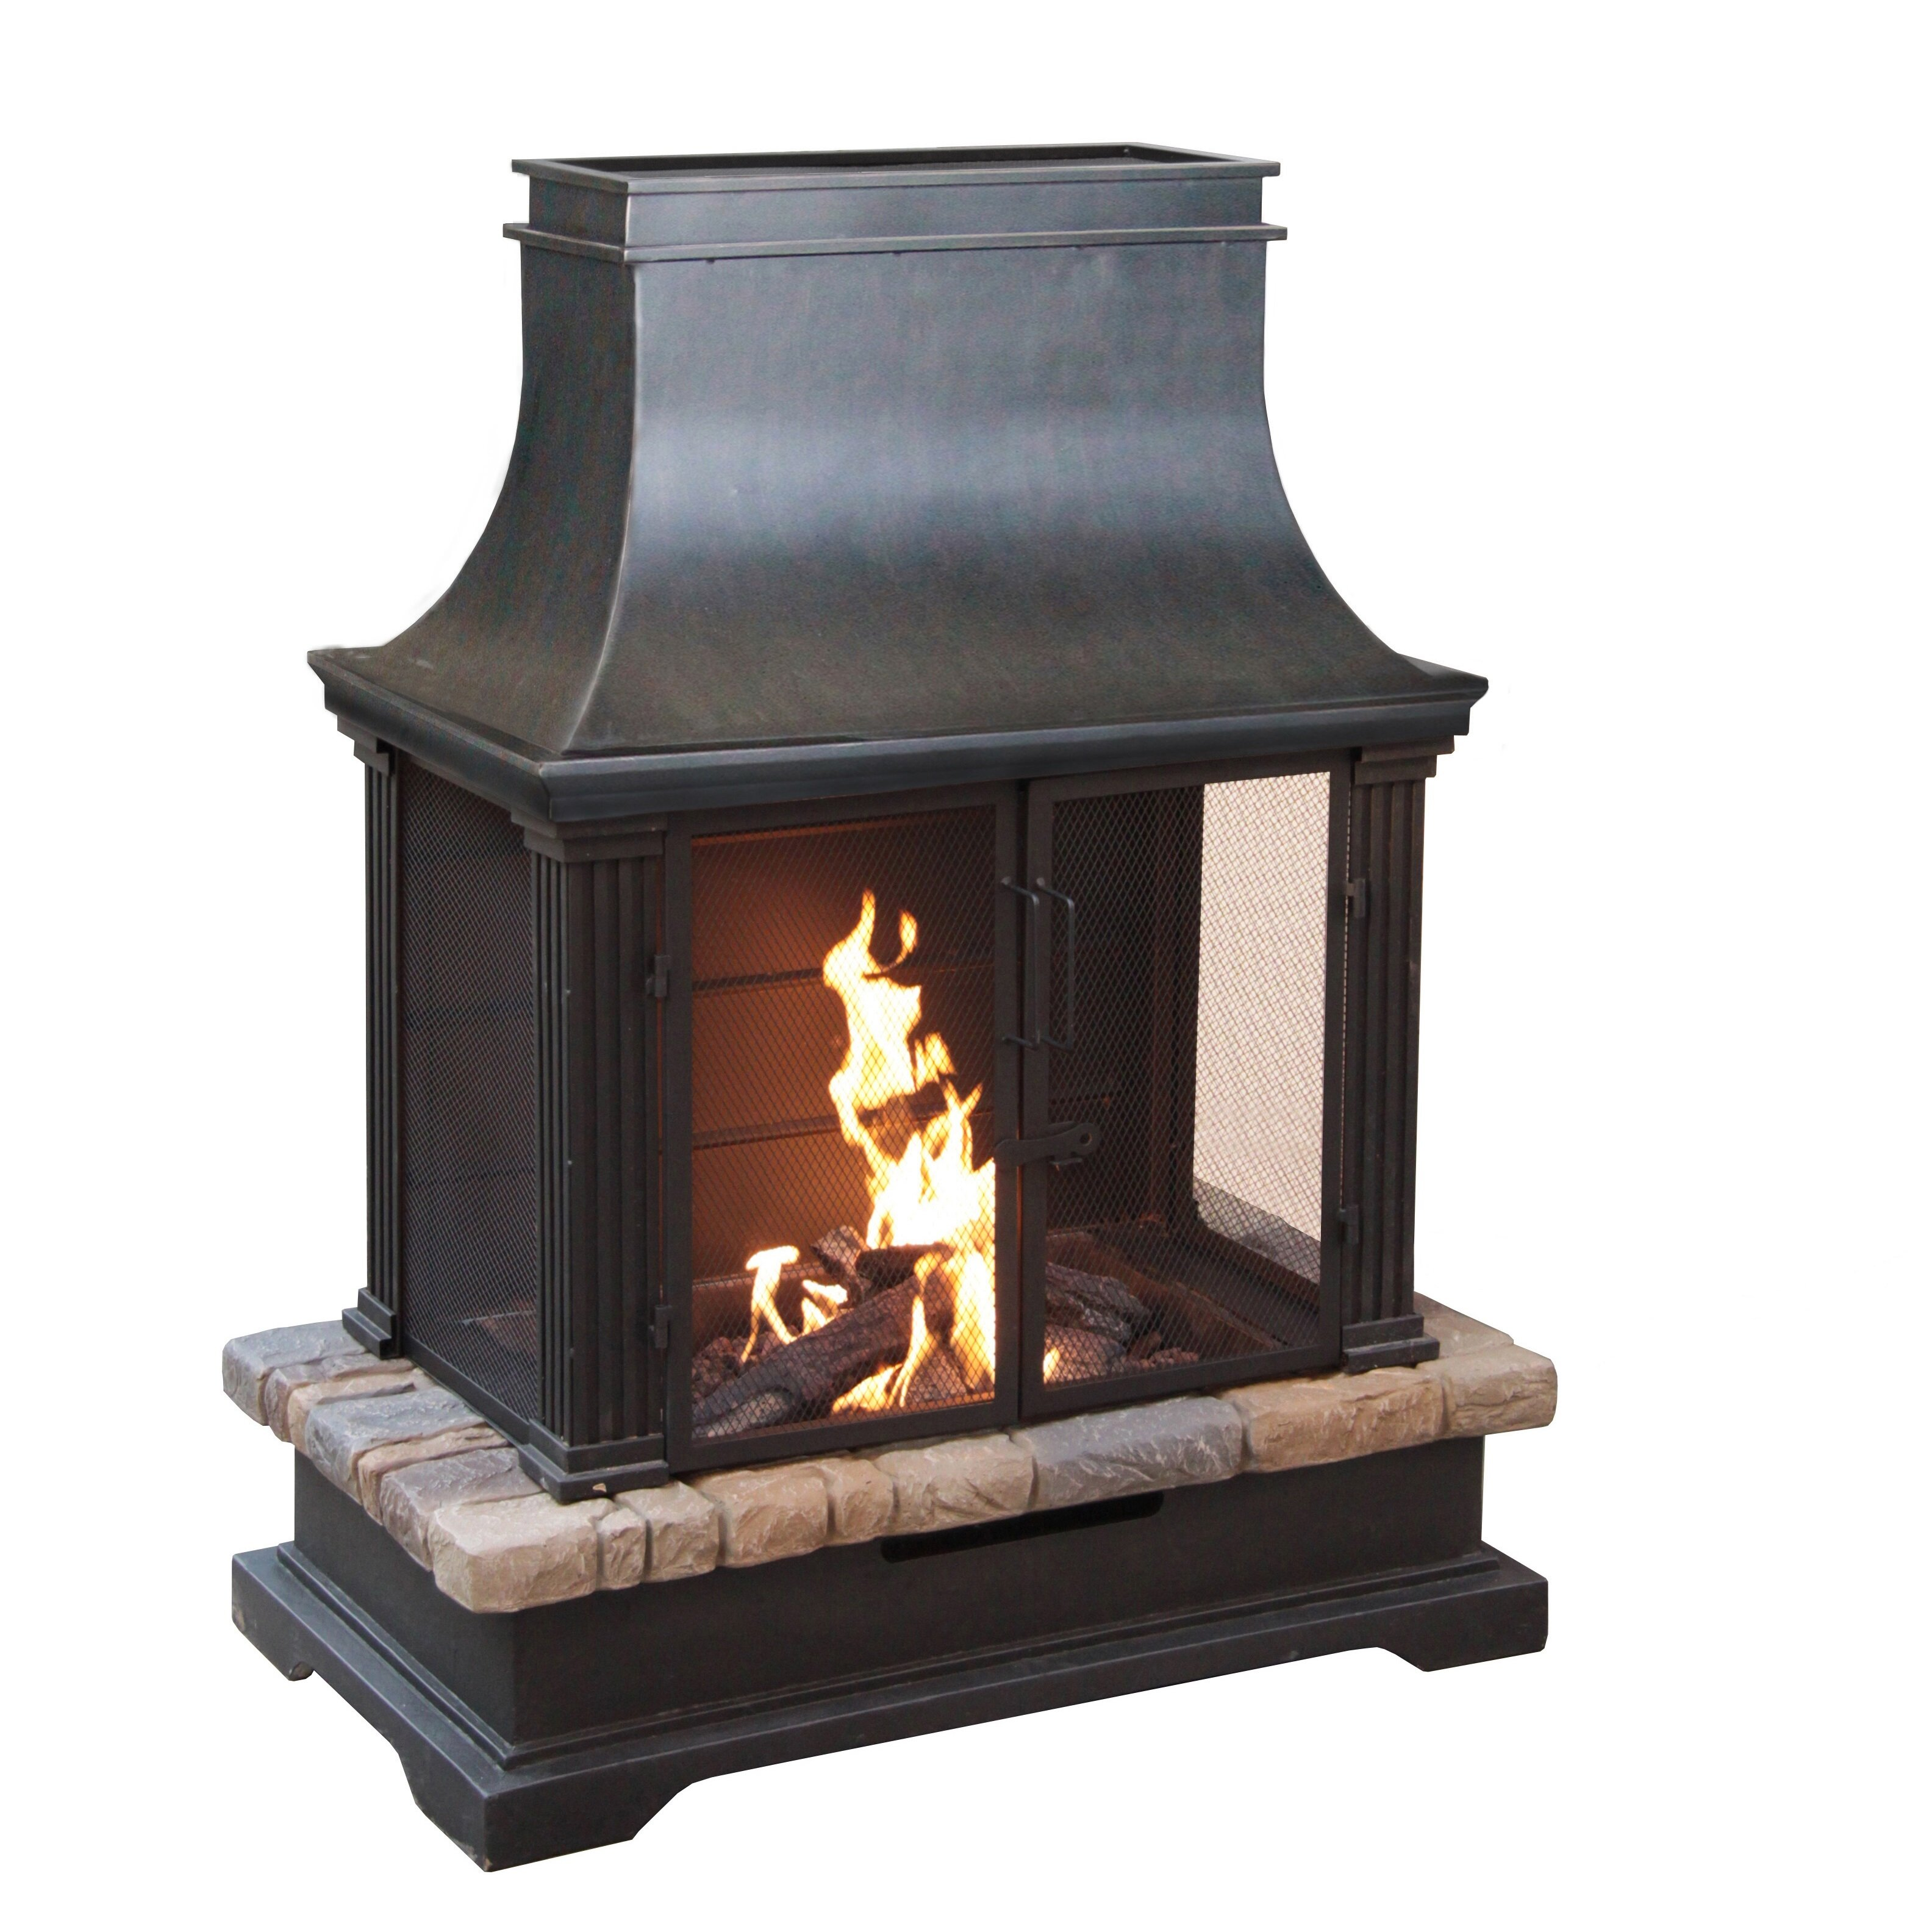 Bond Sevilla Steel and Slate Outdoor Fireplace & Reviews ... on Quillen Steel Outdoor Fireplace id=67343